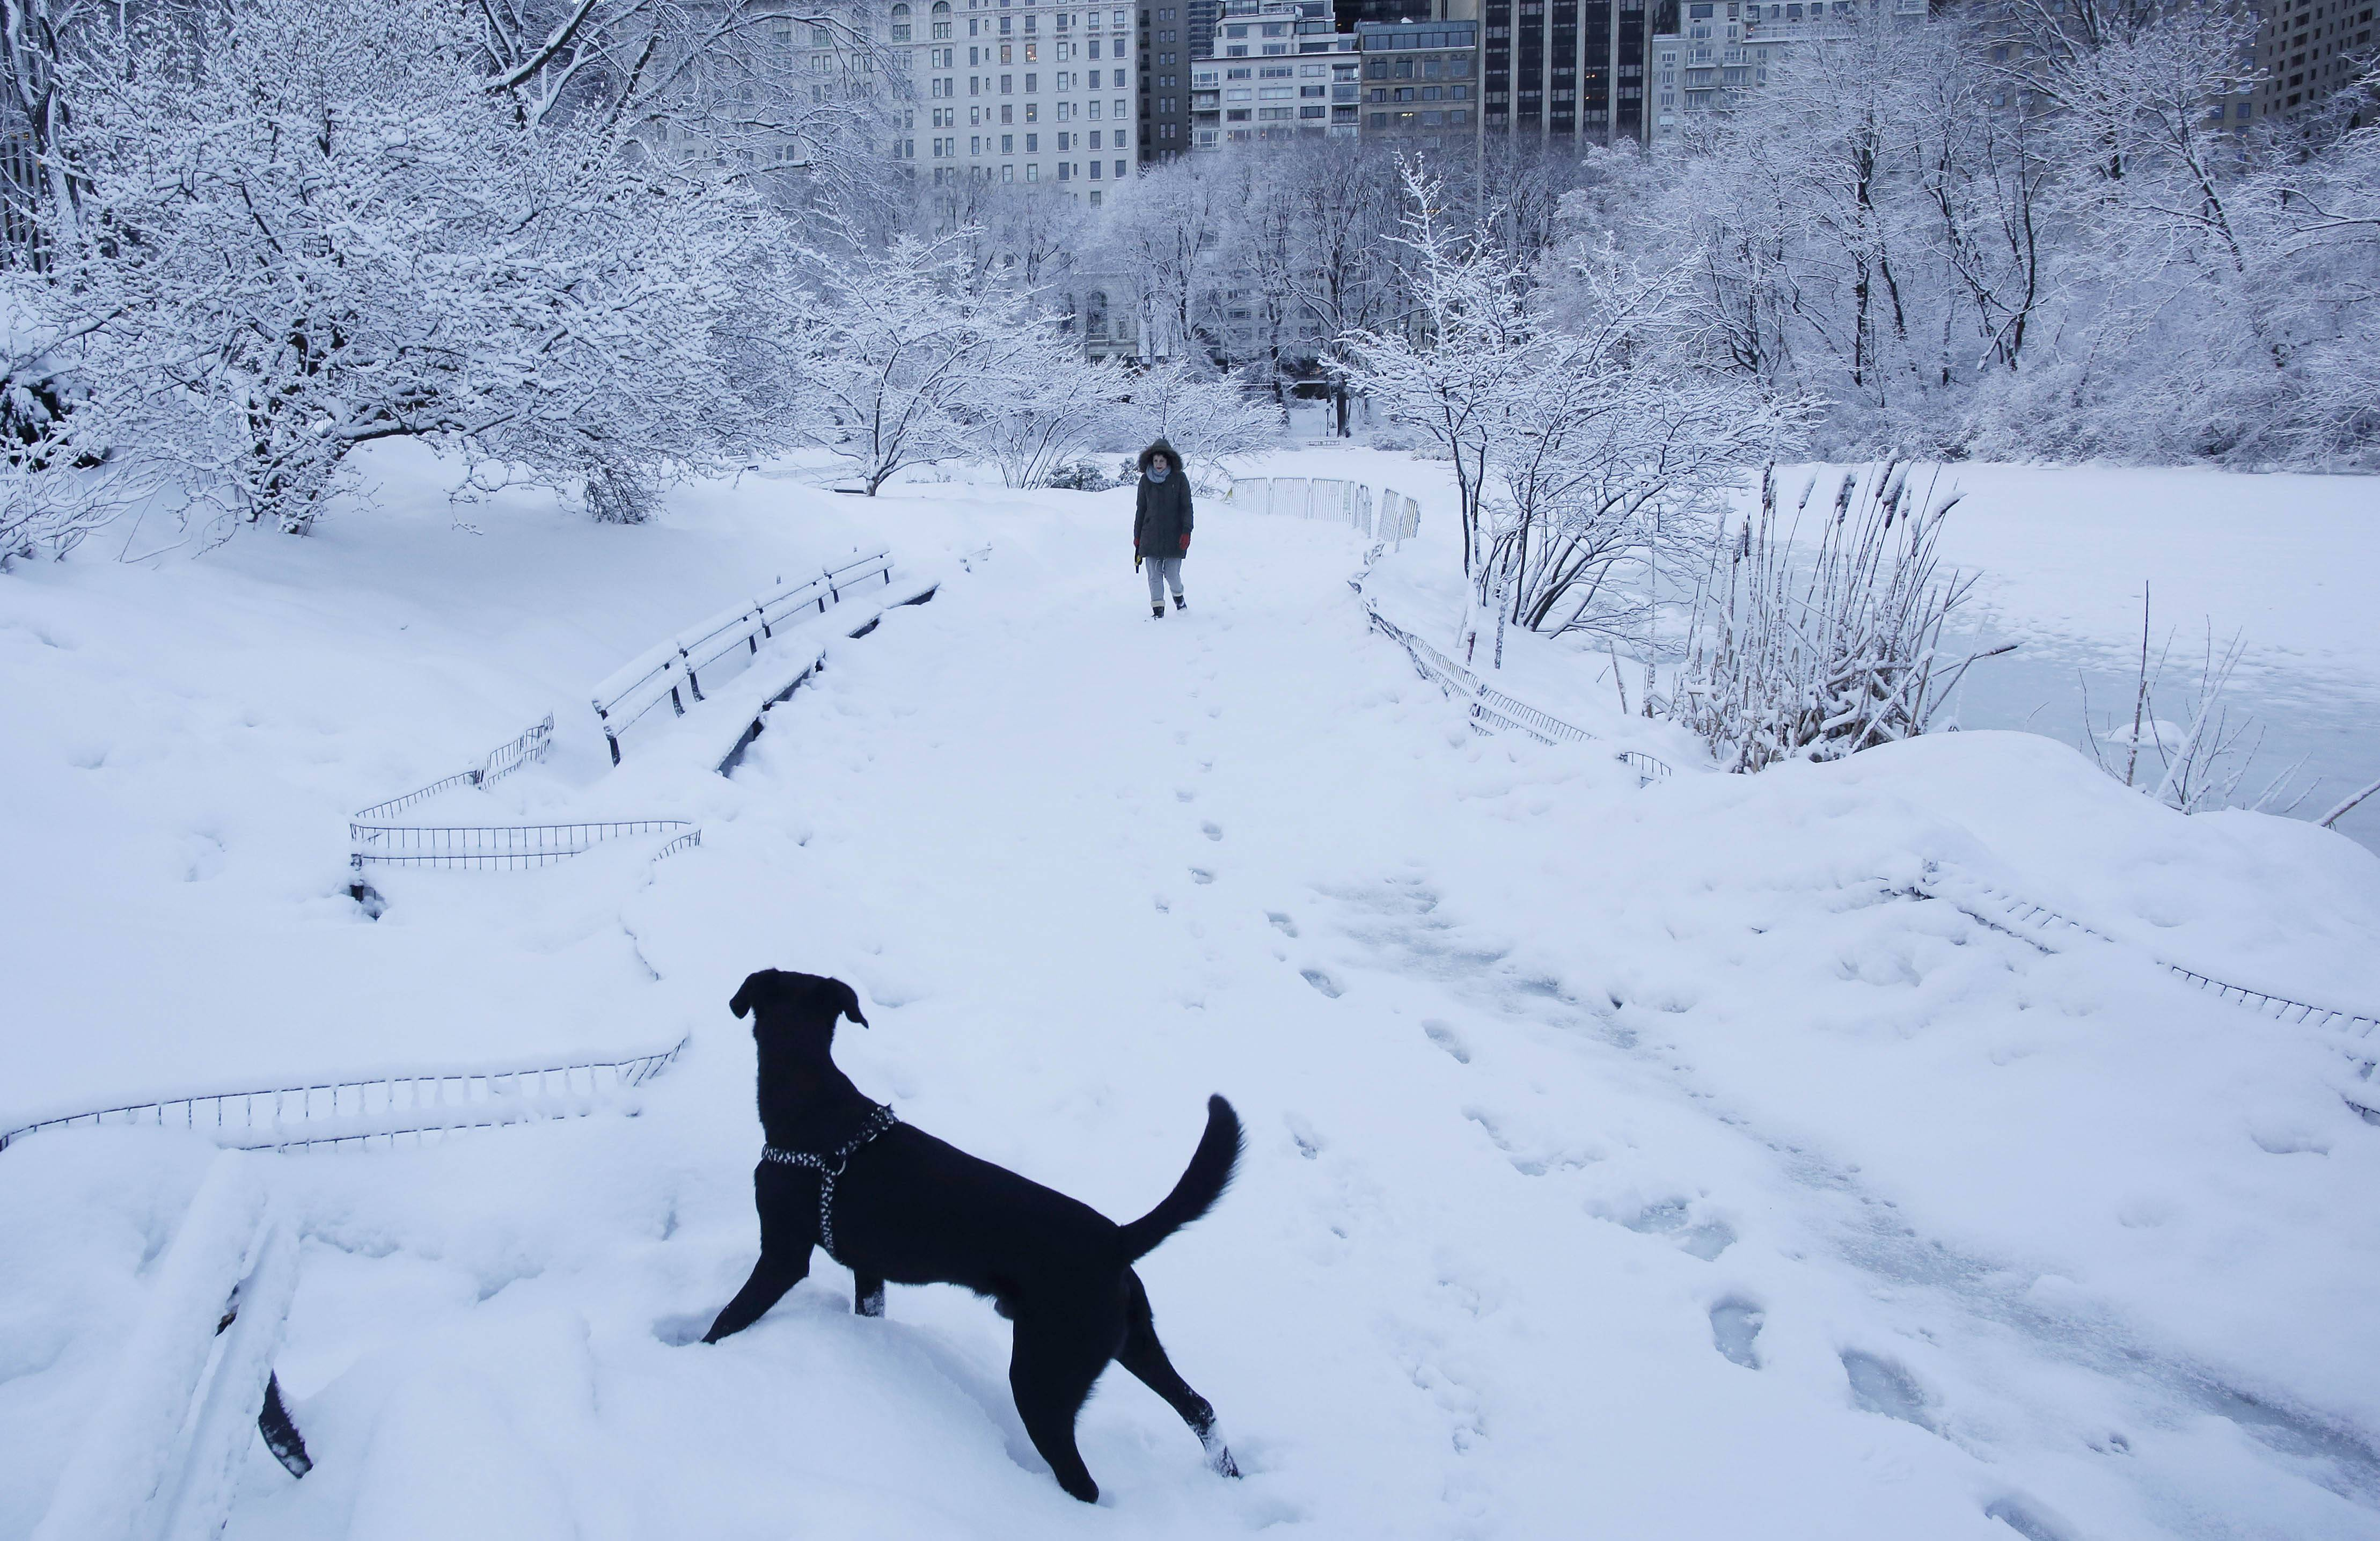 A woman and her dog go for a walk in Central Park, Friday, Feb. 14, 2014 in New York. Another winter storm brought snow and ice to the East Coast.